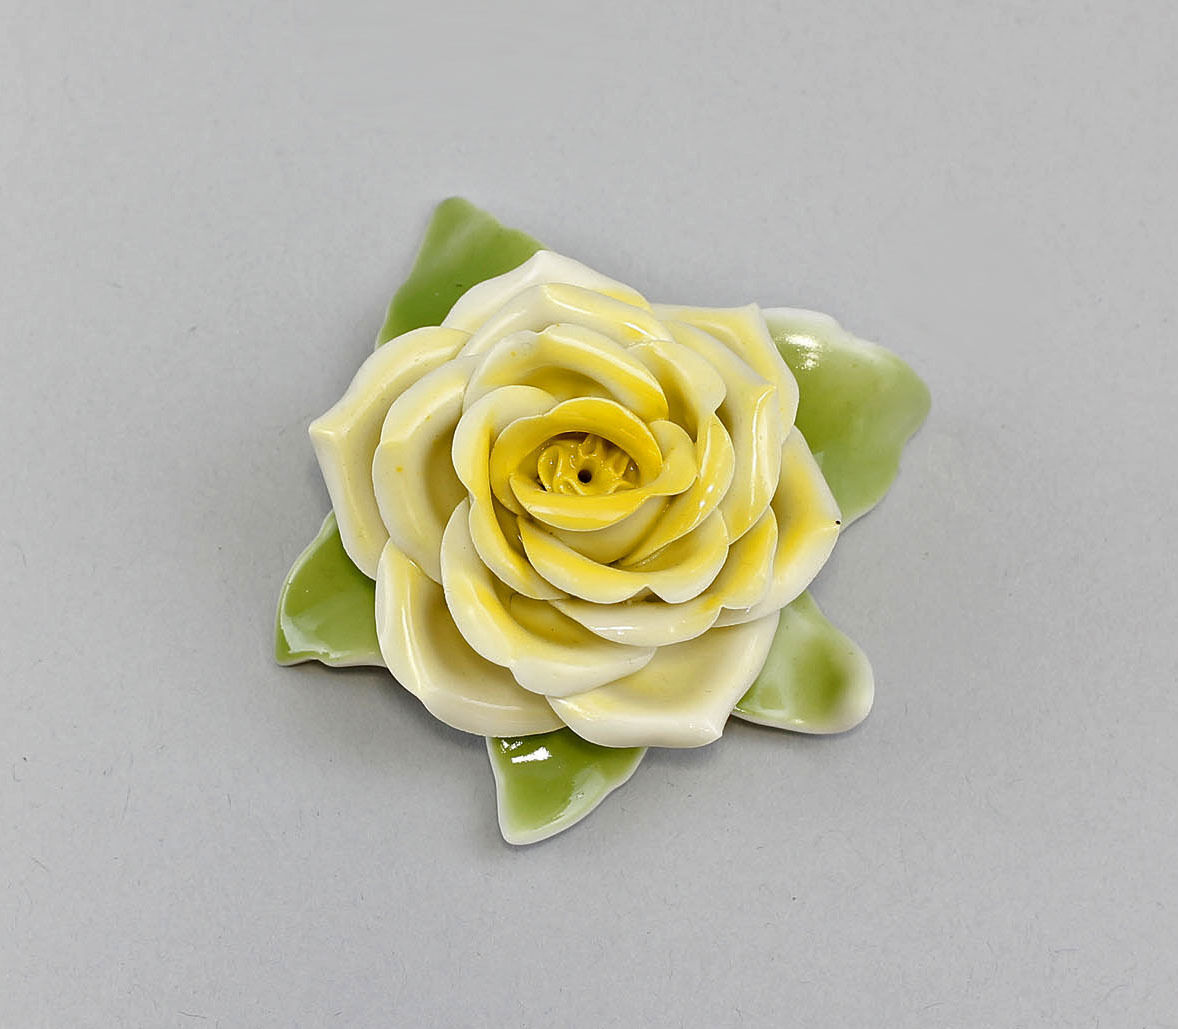 handmade  Table Rose Yellow Kämmer-Porcelain H4CM a3-44131